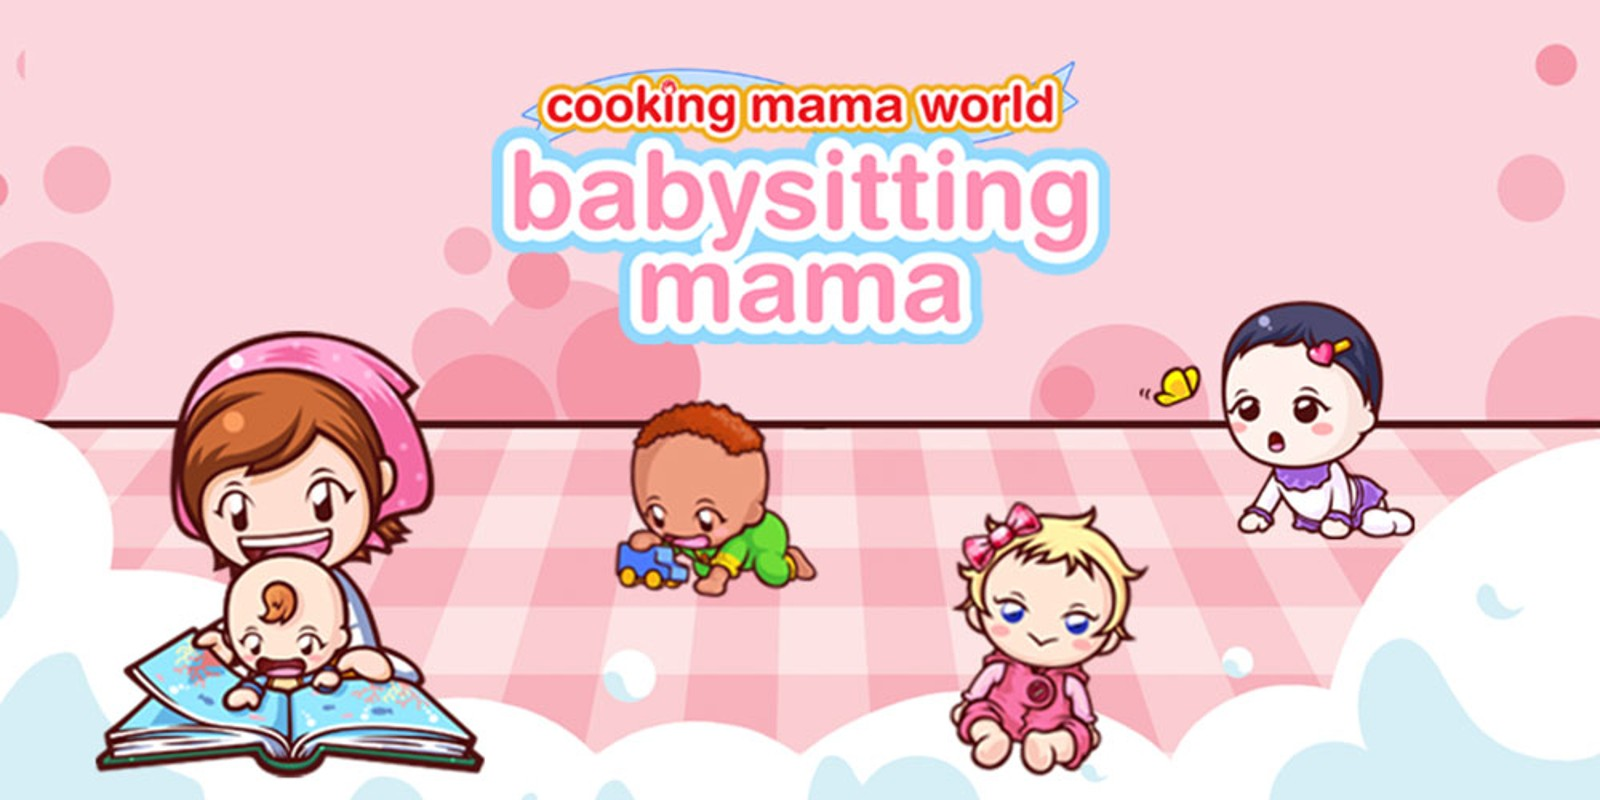 Cooking mama world wii. Babysitting clipart unhappy family